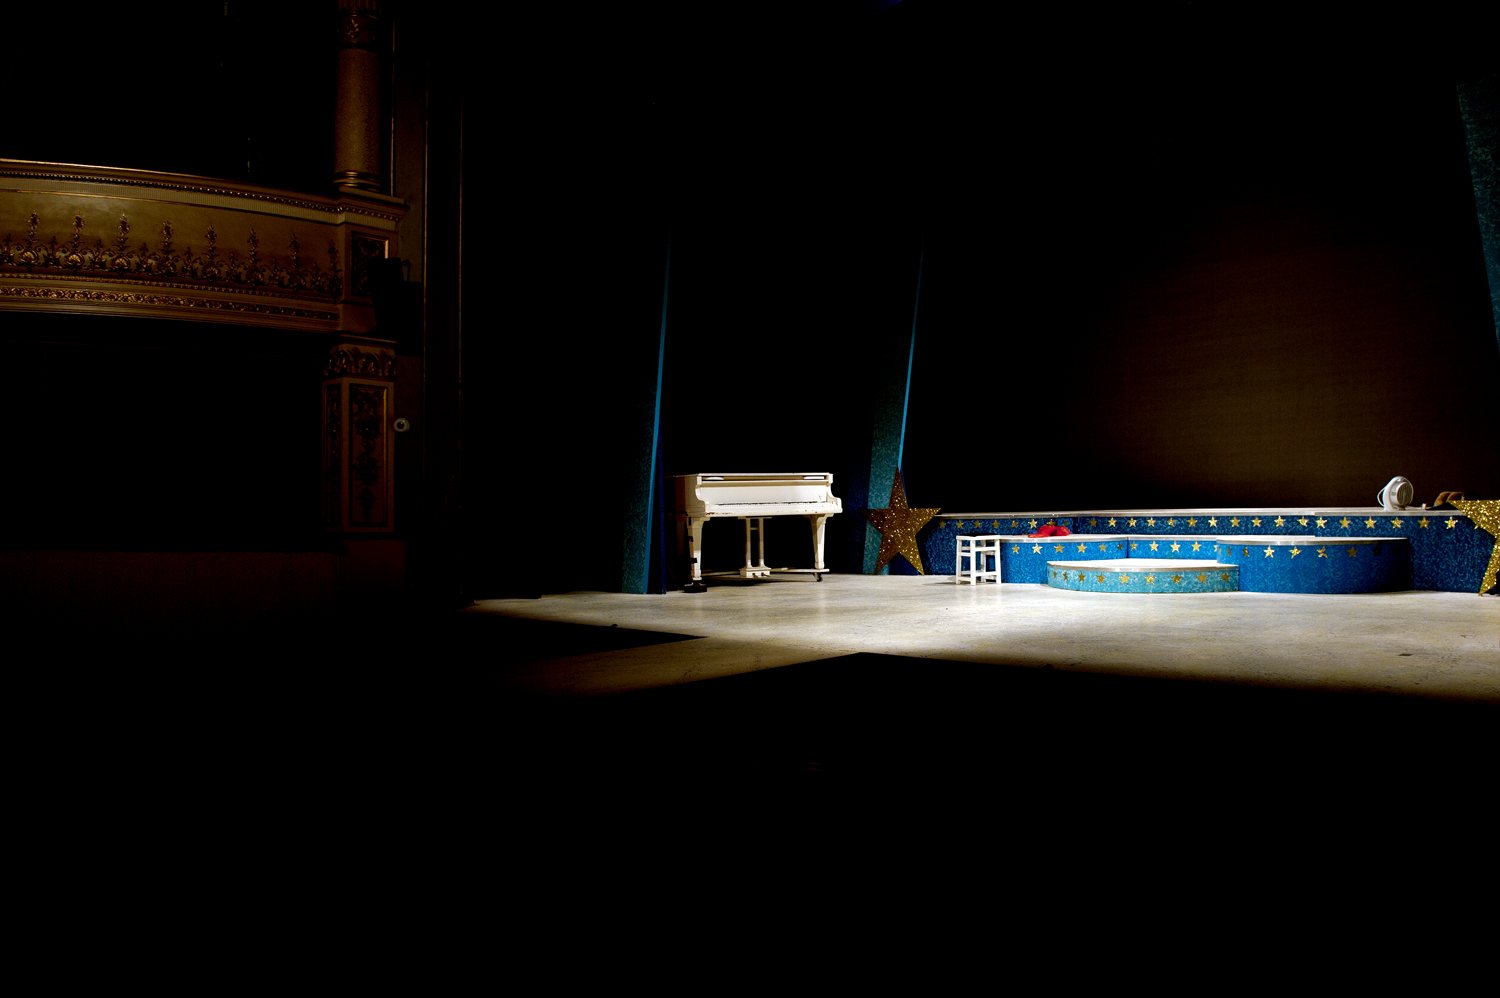 untitled #368 [royal hippodrome theatre, eastbourne, east sussex, england, 2011]